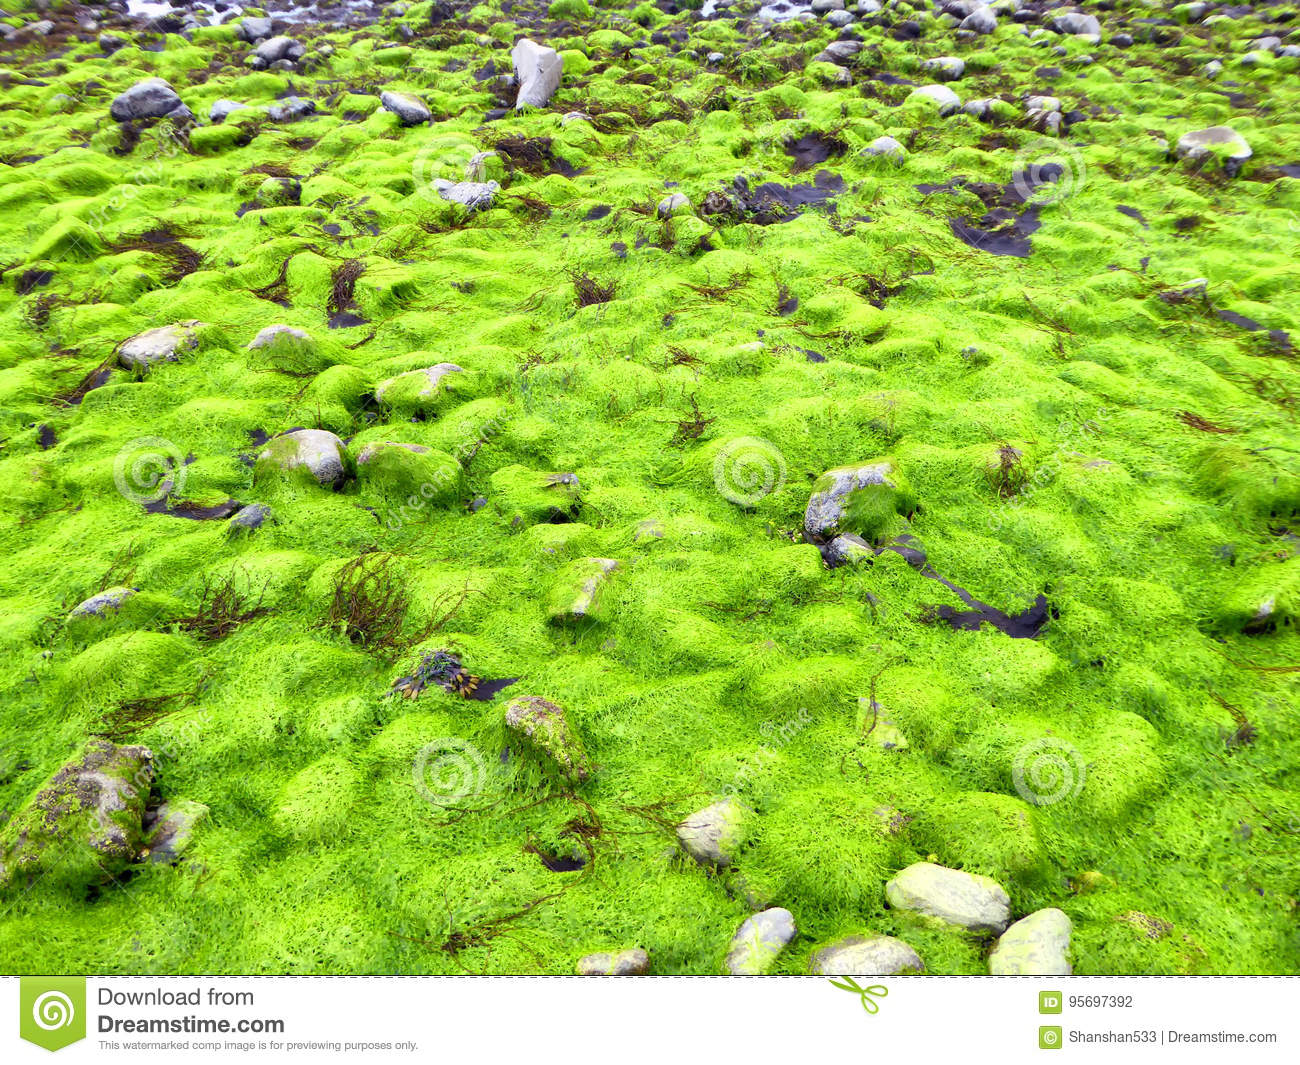 Fluorescent Green Sea Lettuce Ulva Lactuca Seaweed Stock Photo